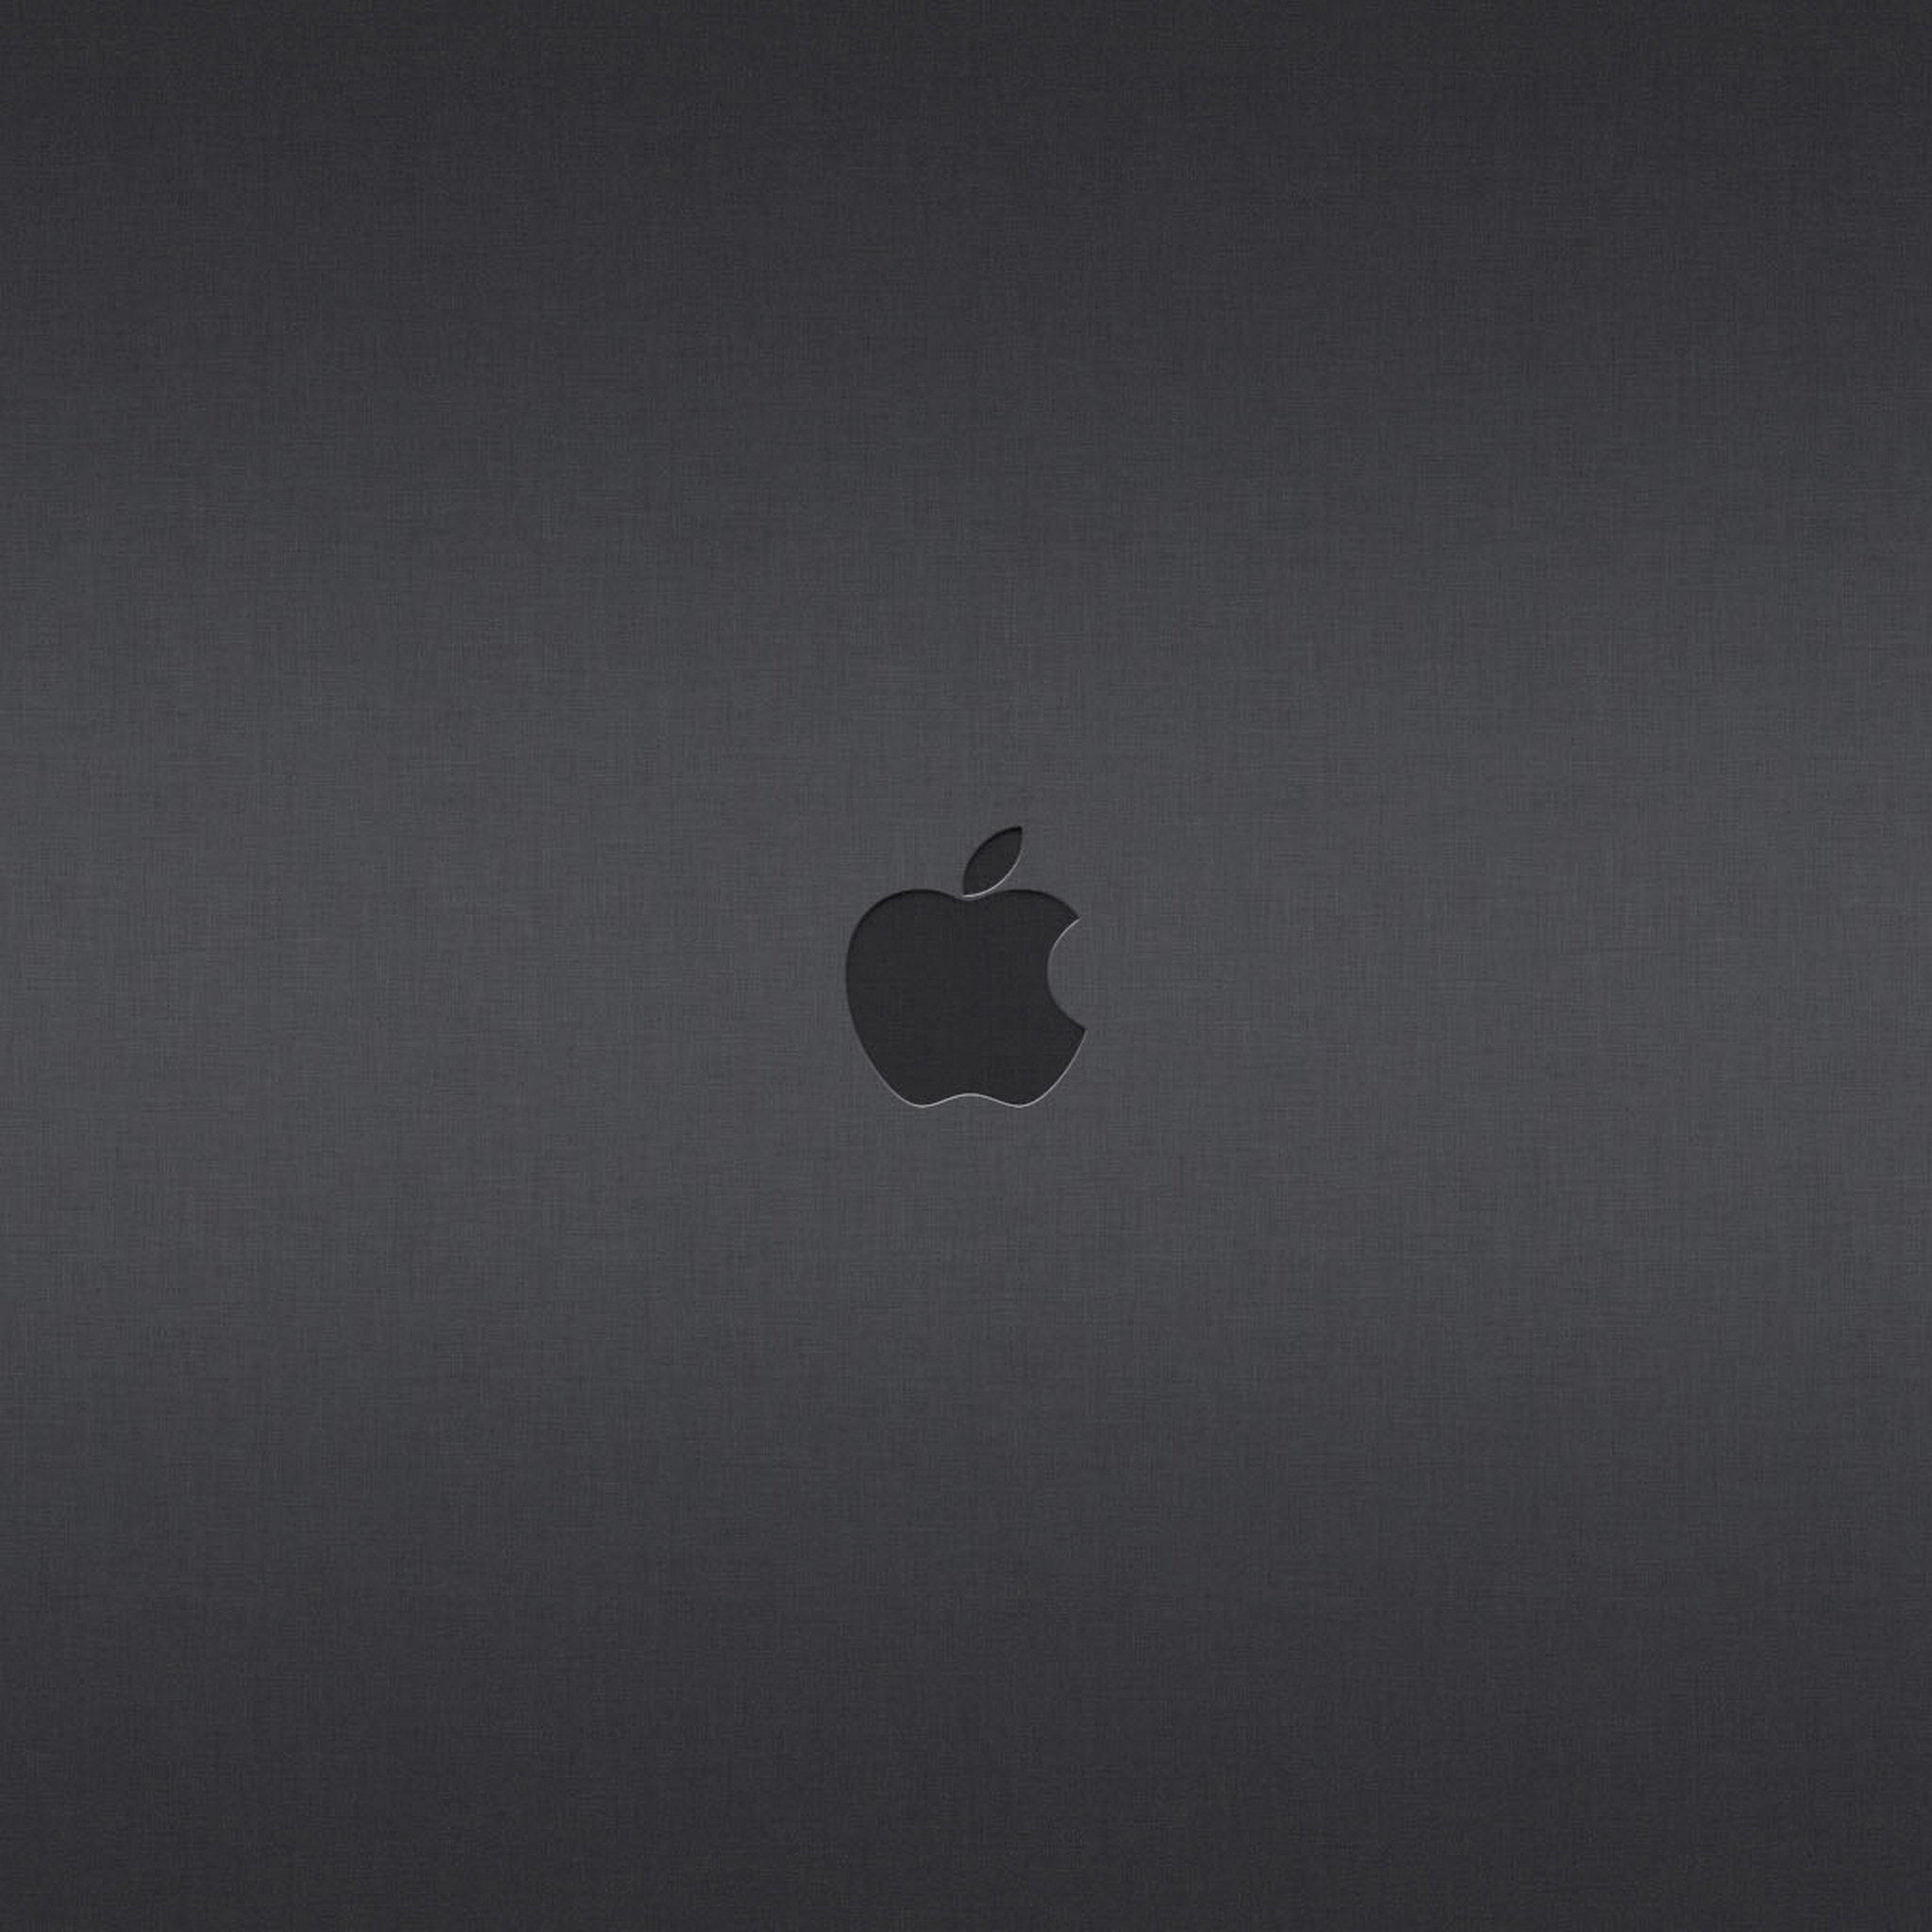 iPad Wallpapers Apple LOGO 015   Apple New iPad iPad 3 iPad 4 2048x2048